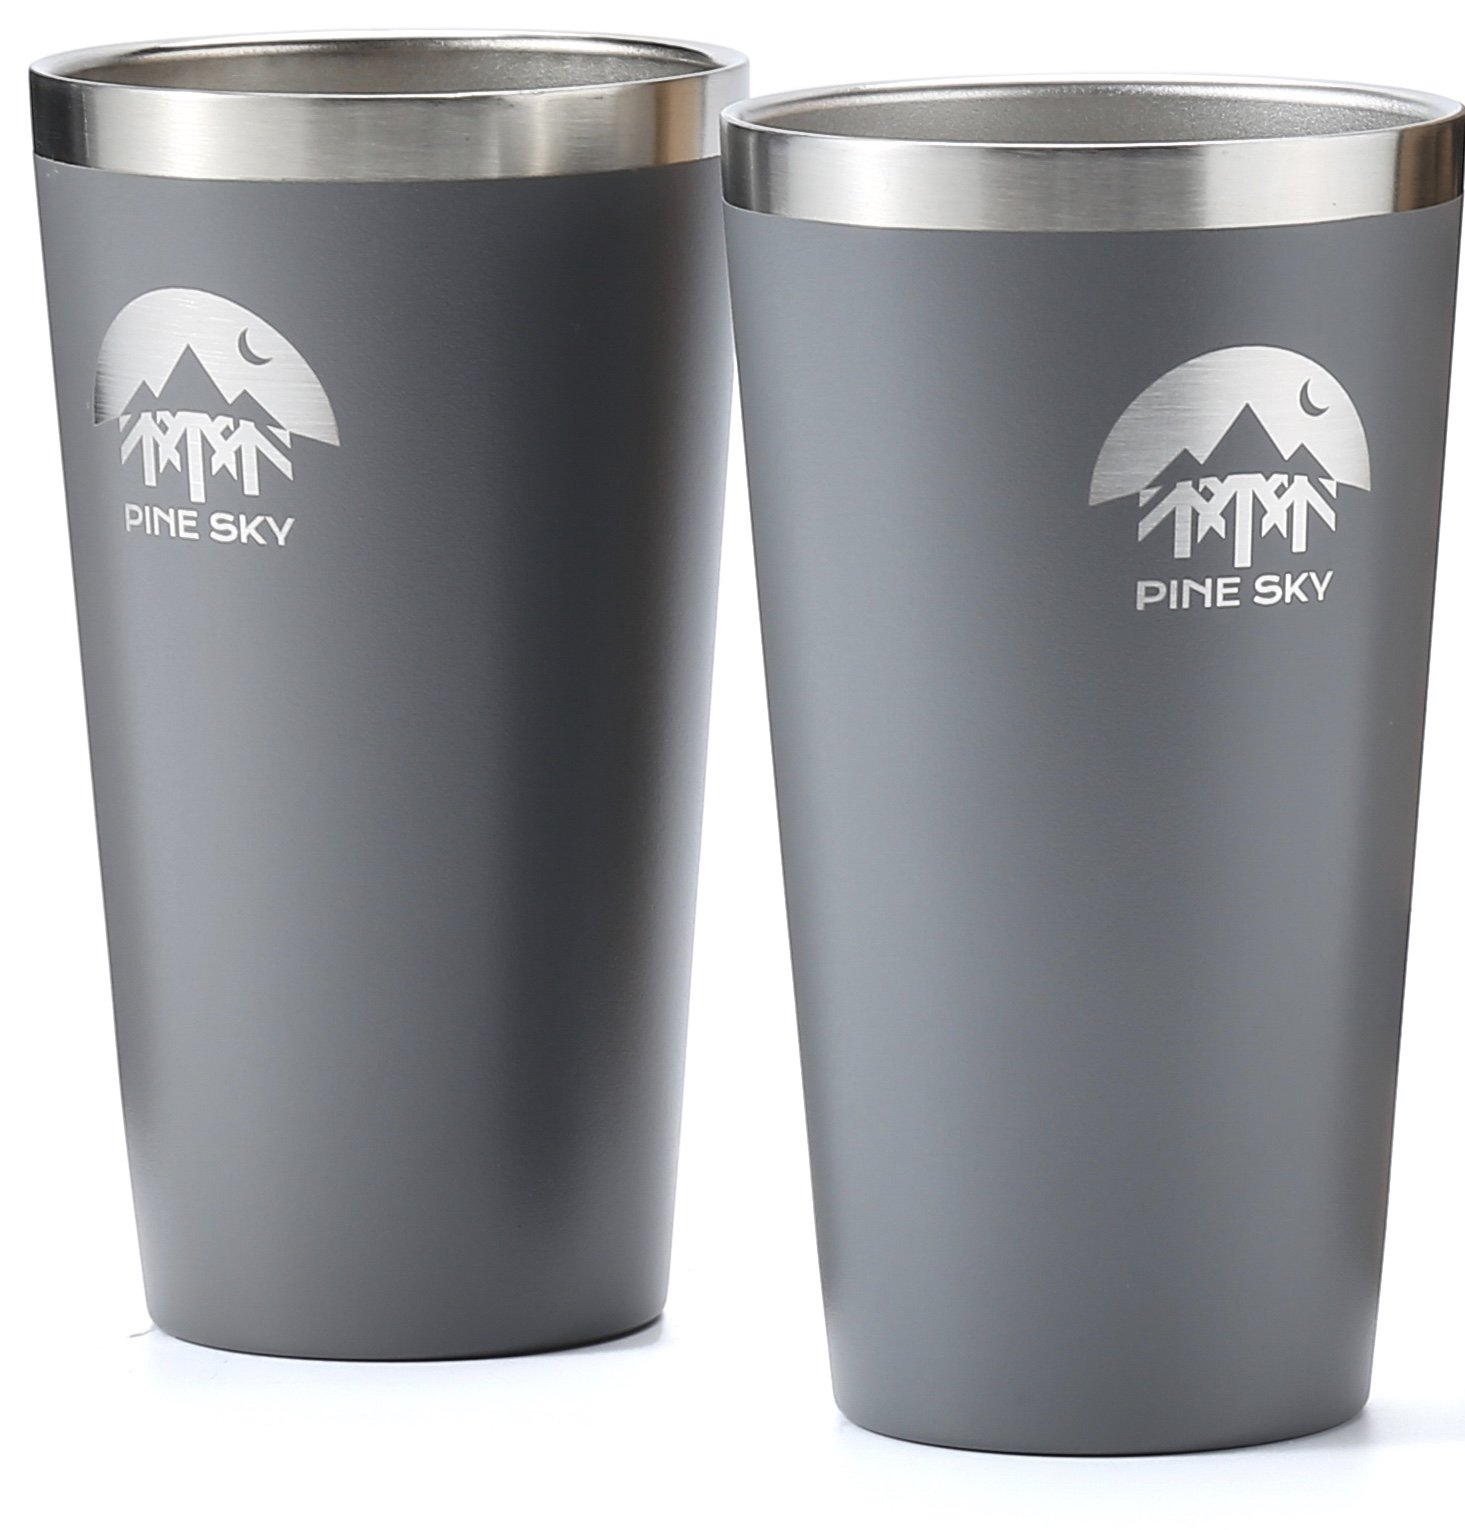 Stainless Steel True Pint Cup by Pine Sky, 16 oz Vacuum Insulated, Stackable Tumbler (Set of 2, Slate)